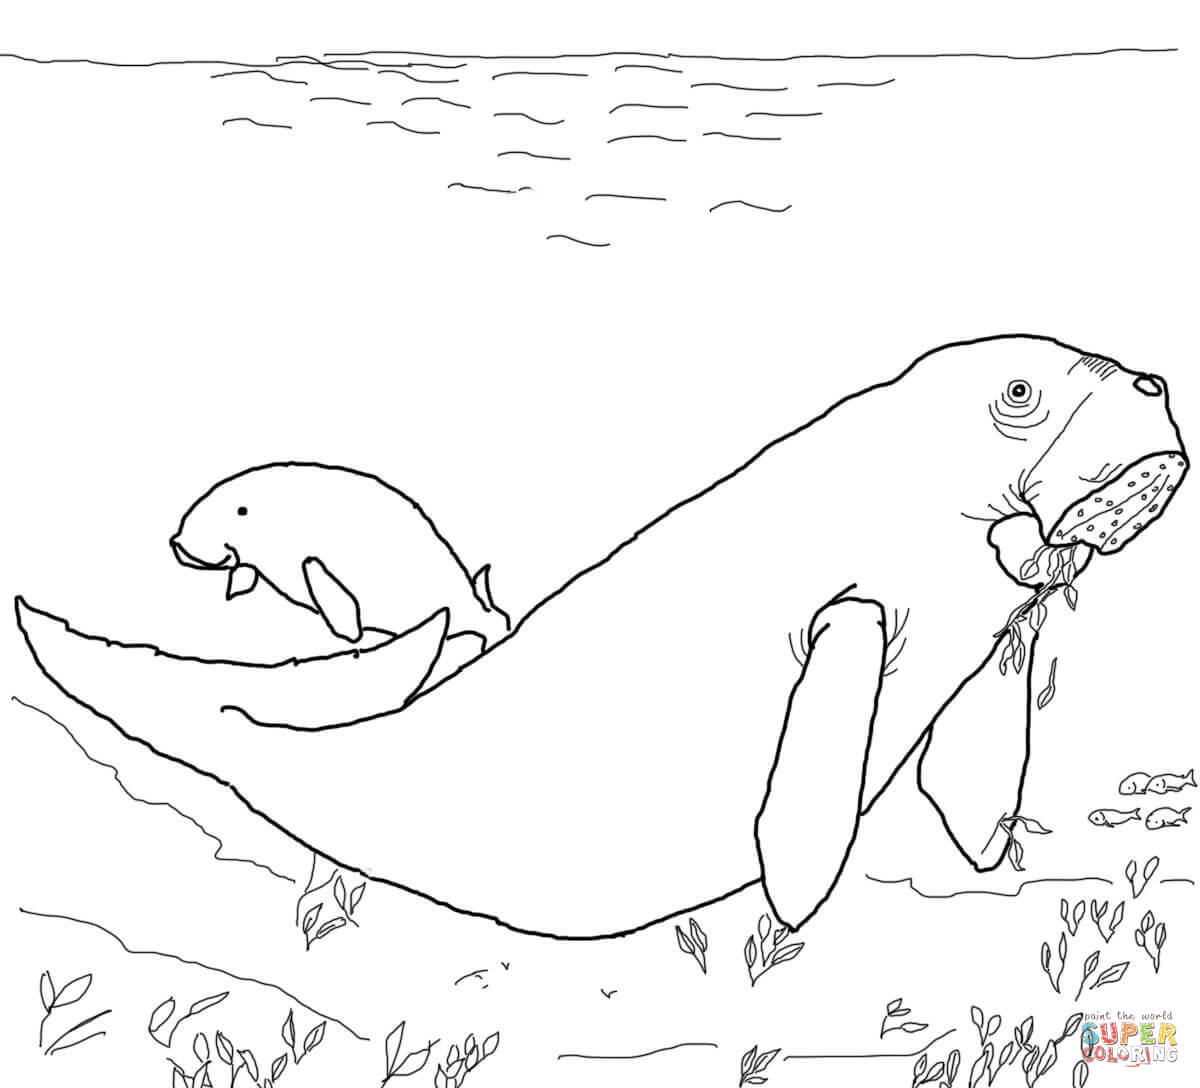 Dugong coloring #14, Download drawings